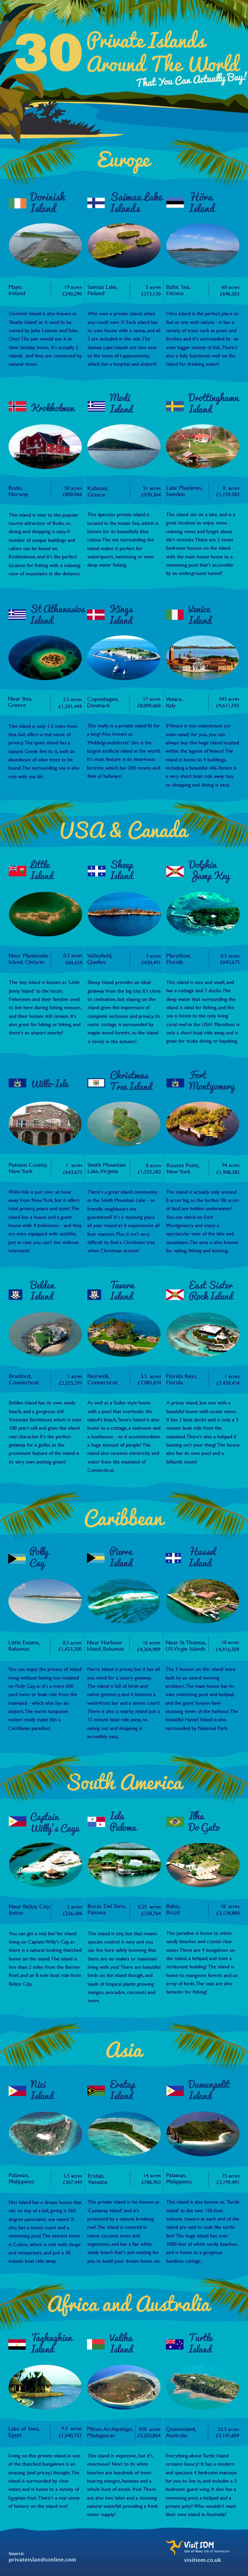 Infographic: 30 Private Islands Around The World That You Can Actually Buy